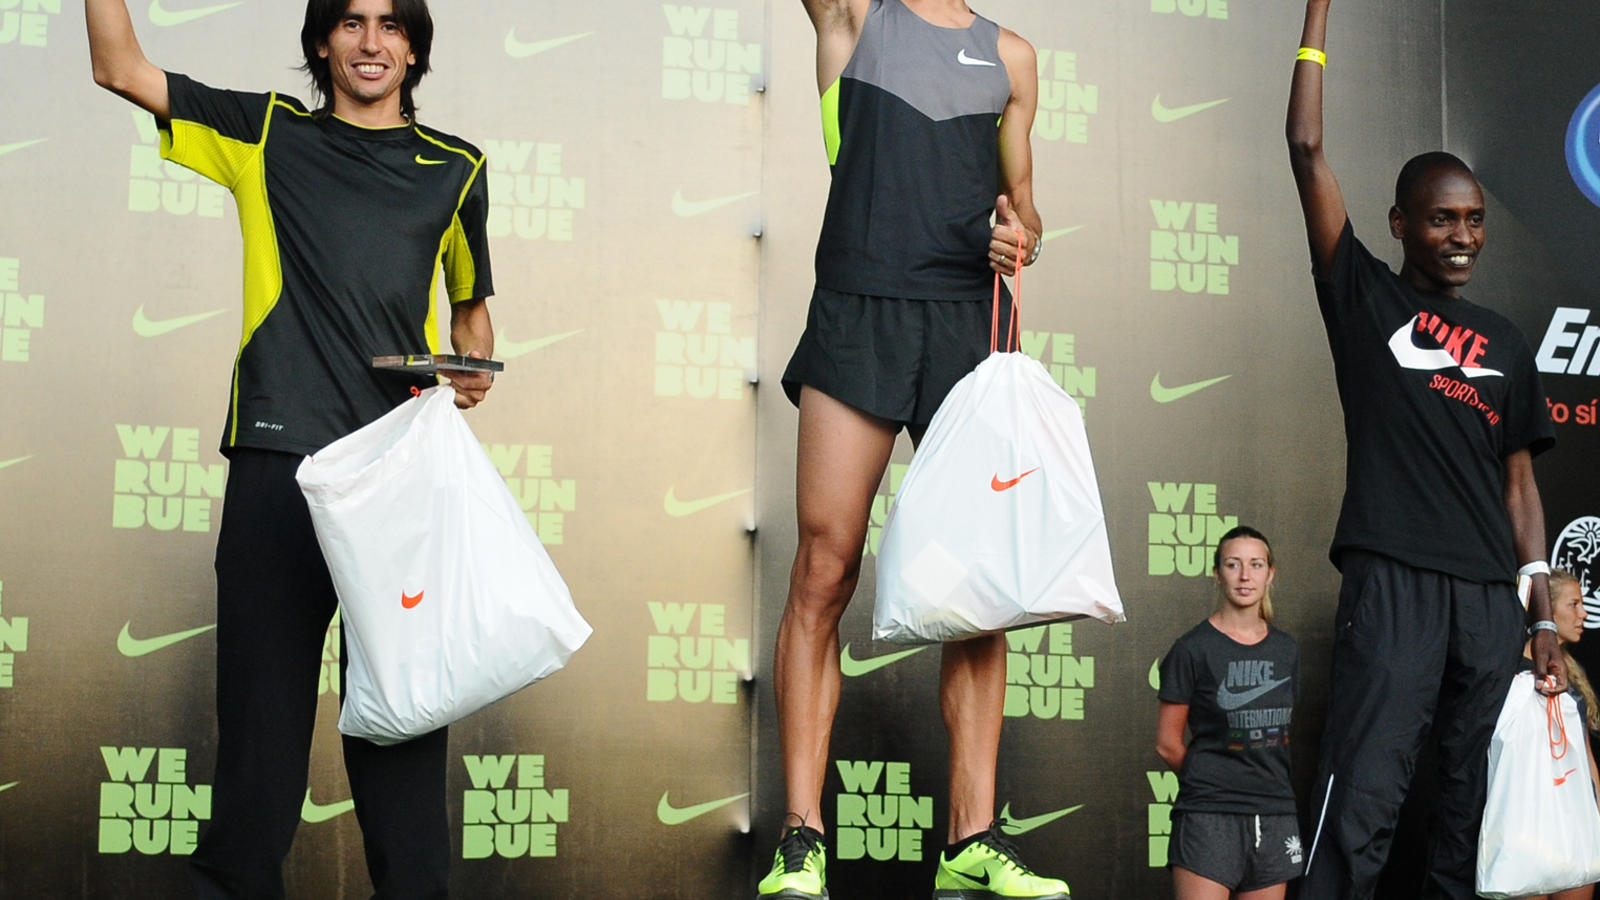 We_Run_Buenos_Aires_Men´s_Podium